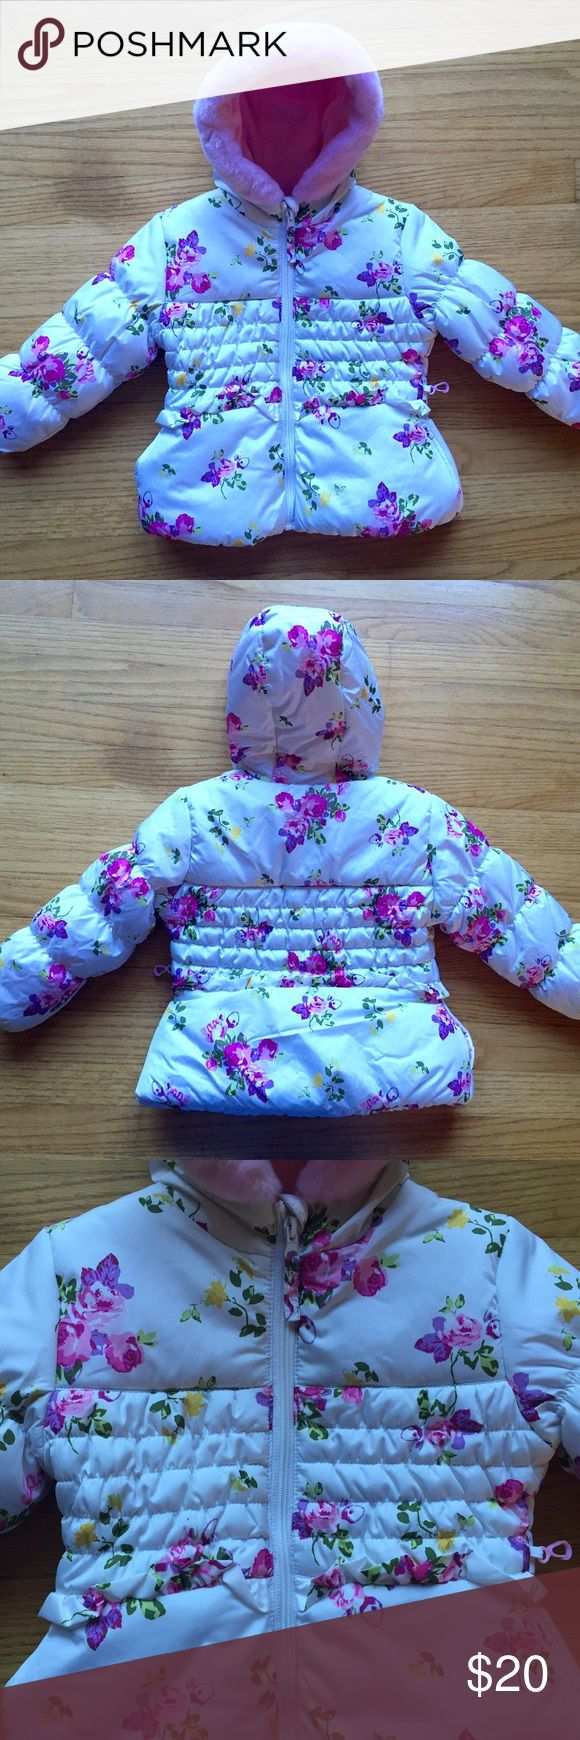 Toddler Girls Winter Puffer Jacket floral print NWOT Toddler girls winter puffer jacket, pink fleece lining. Very cute floral print. Size 3t. Rothschild Jackets & Coats Puffers